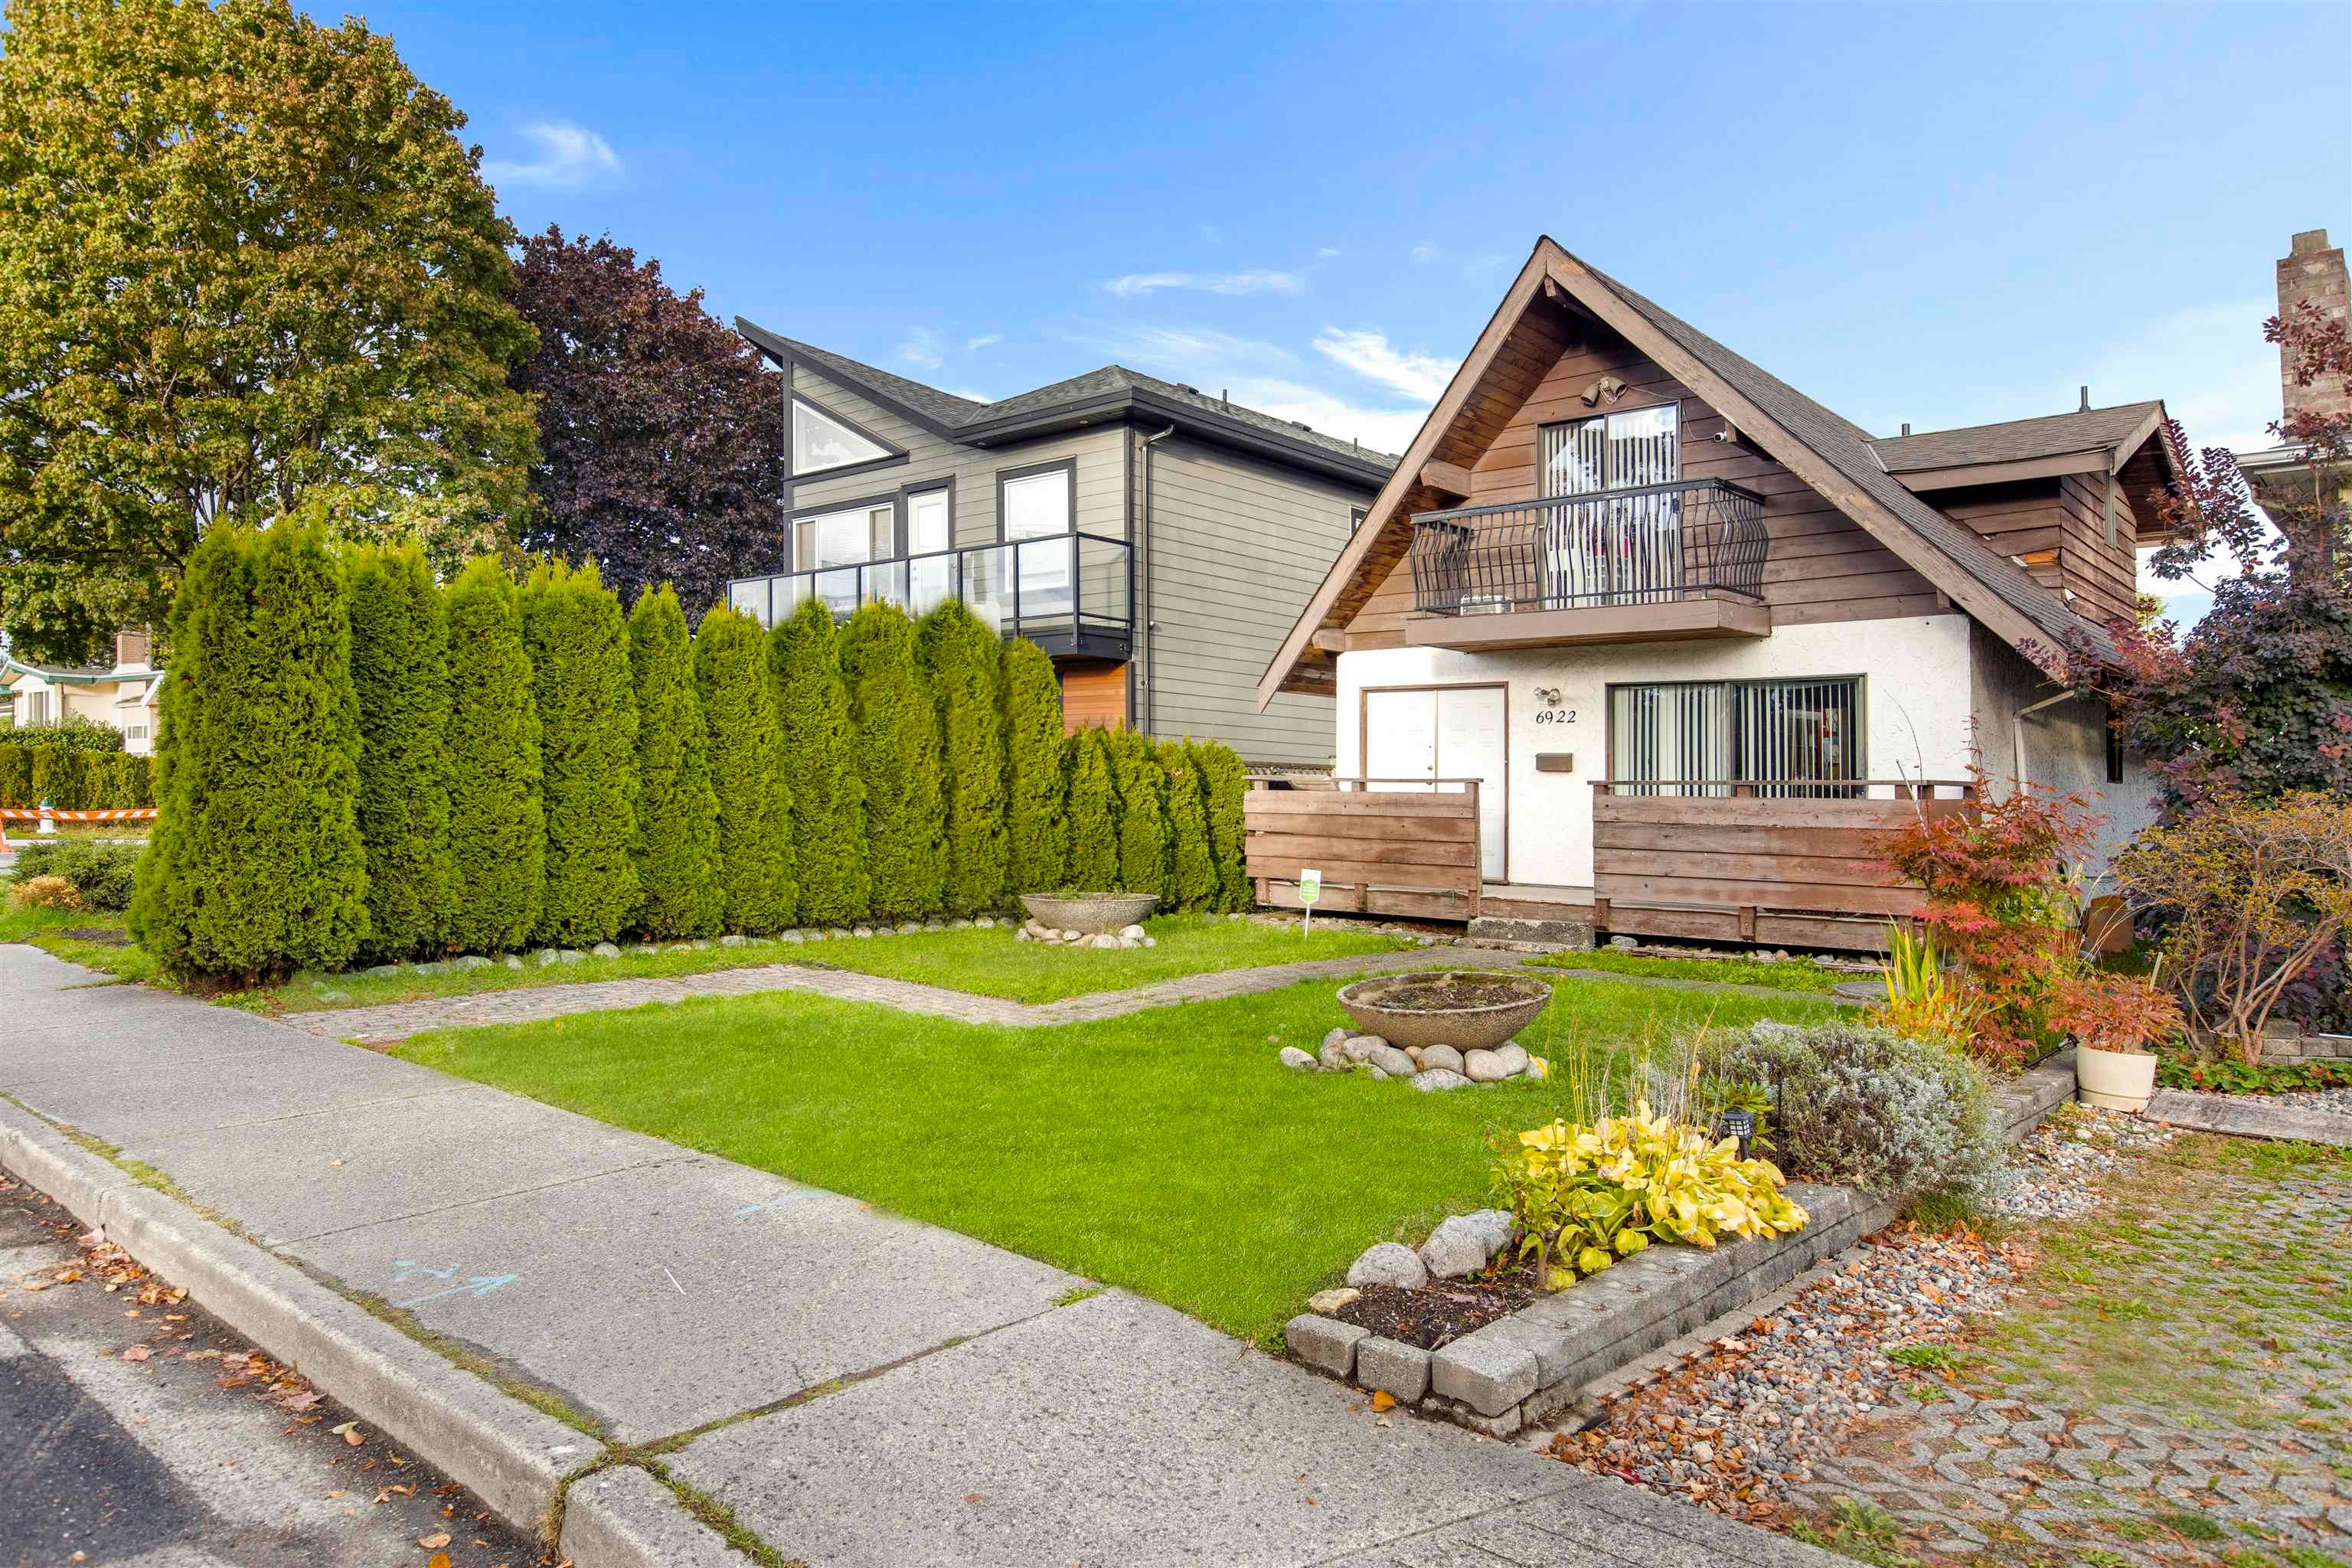 Main Photo: 6922 SPERLING Avenue in Burnaby: Highgate House for sale (Burnaby South)  : MLS®# R2624024